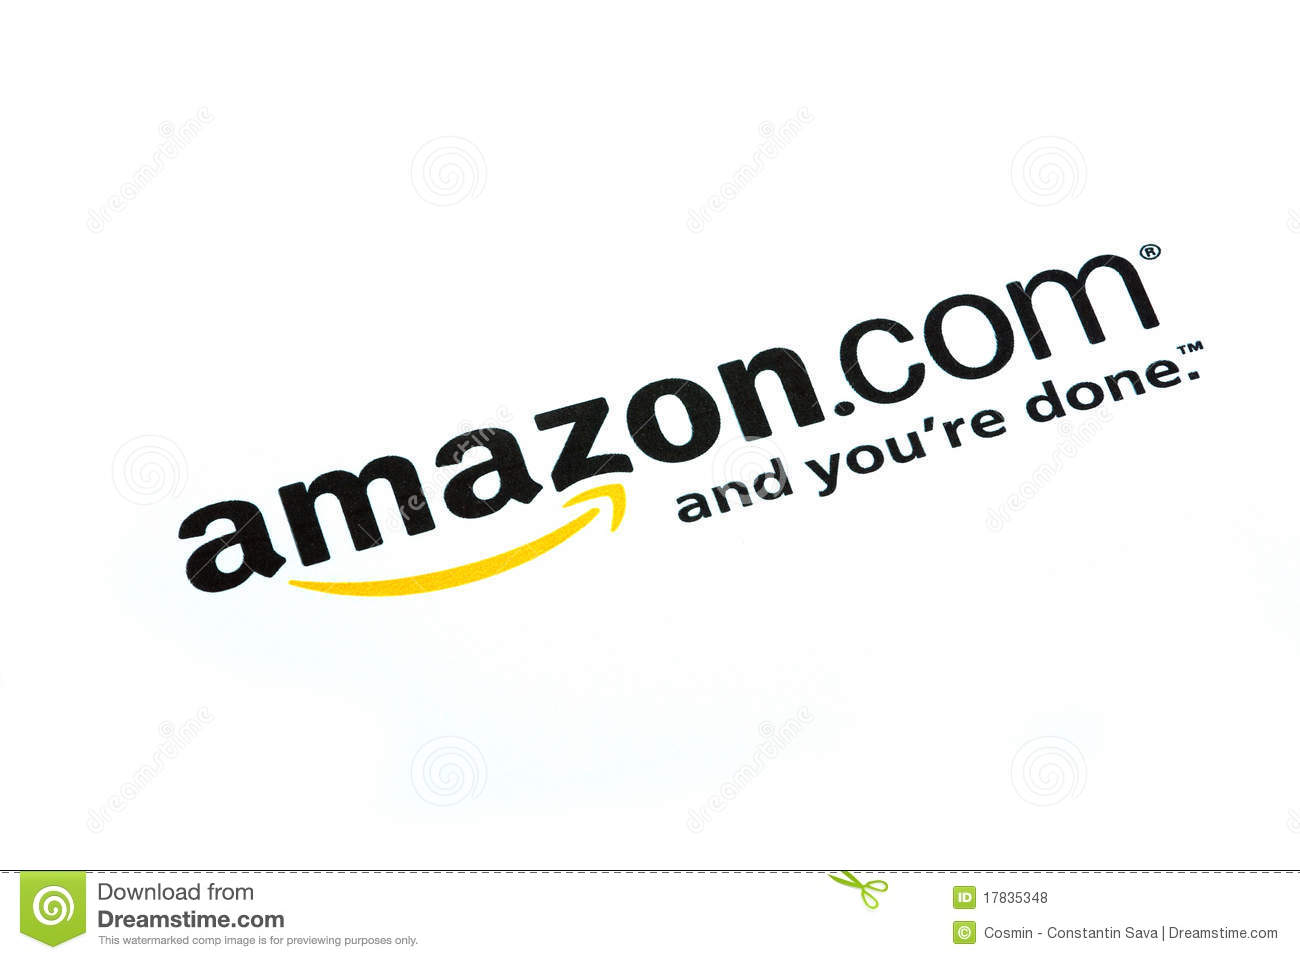 Amazon Web Services is Hiring. Amazon Web Services (AWS) is a dynamic, growing business unit within imsese.cf We are currently hiring Software Development Engineers, Product Managers, Account Managers, Solutions Architects, Support Engineers, System Engineers, Designers and more.